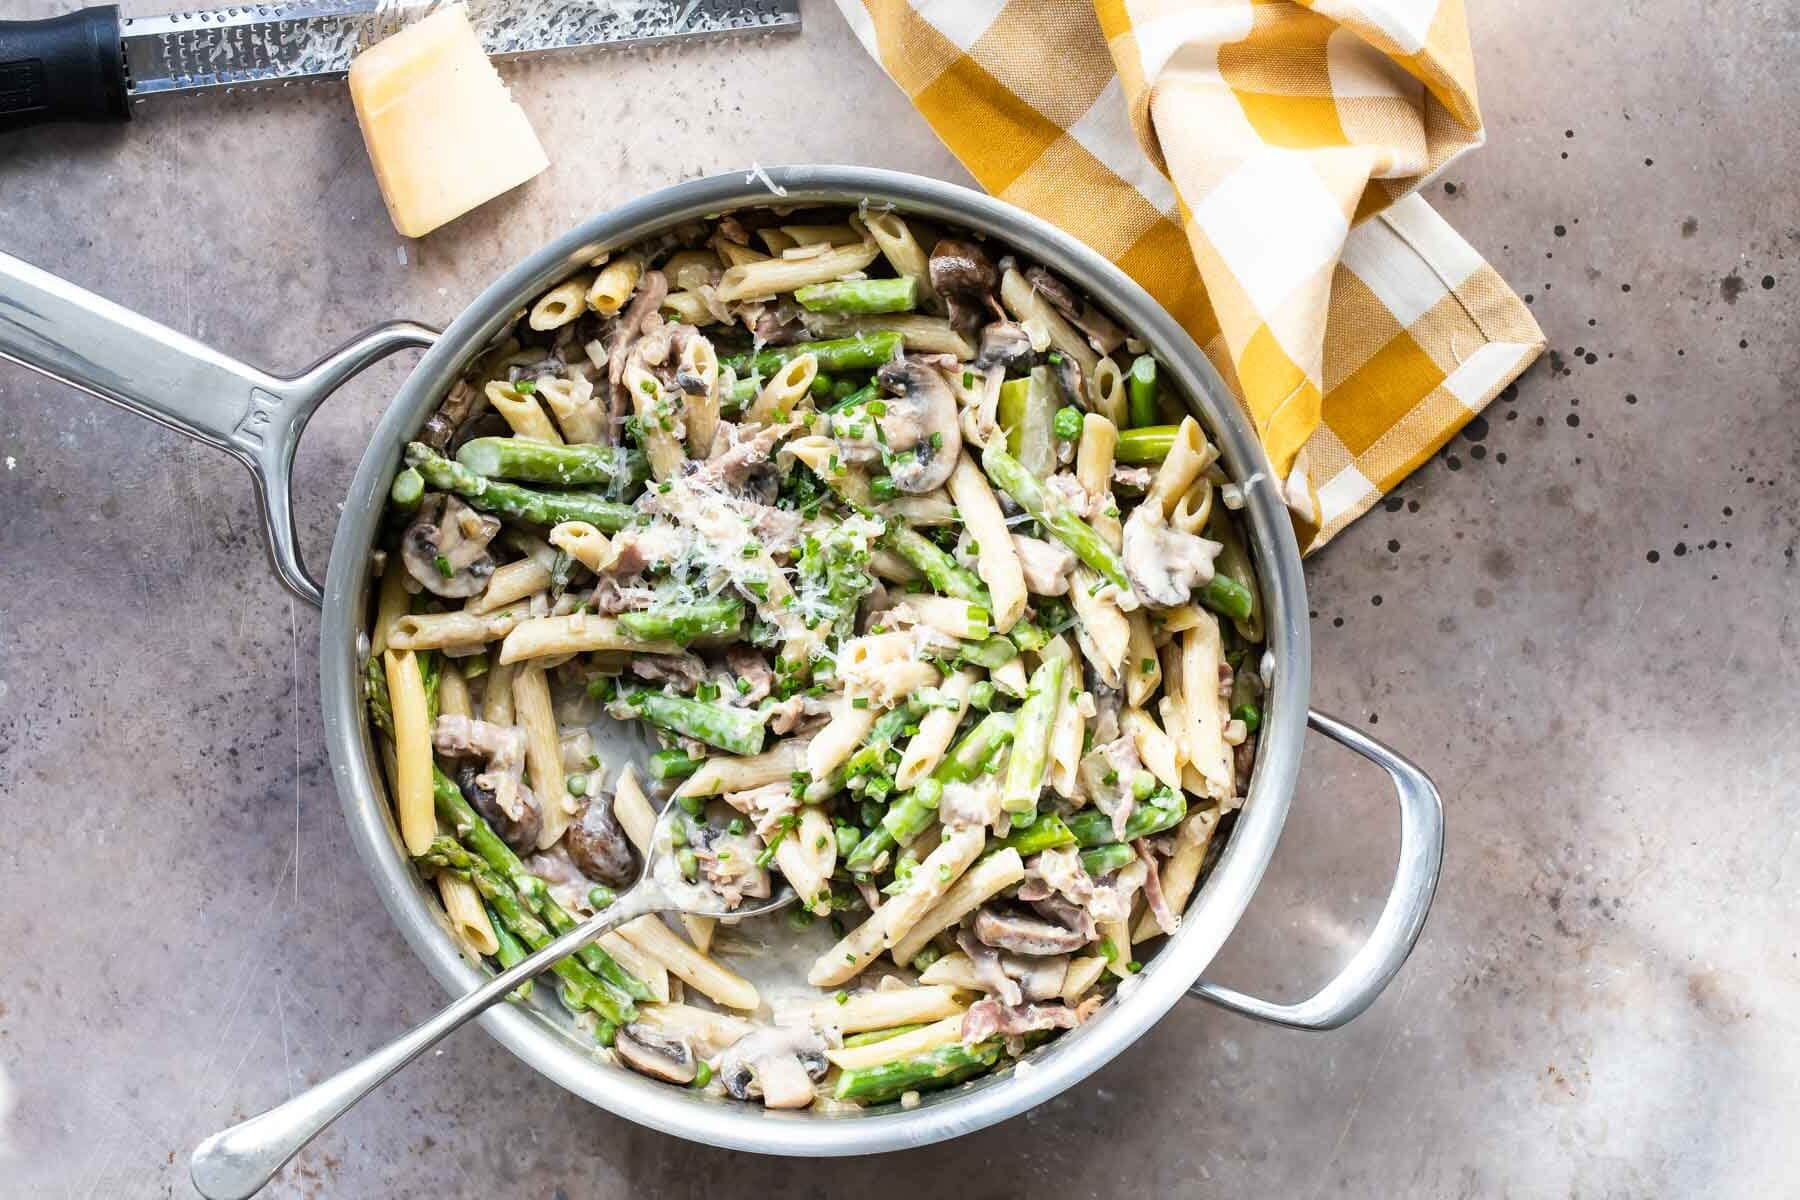 Pasta with peas and prosciutto in a silver skillet.